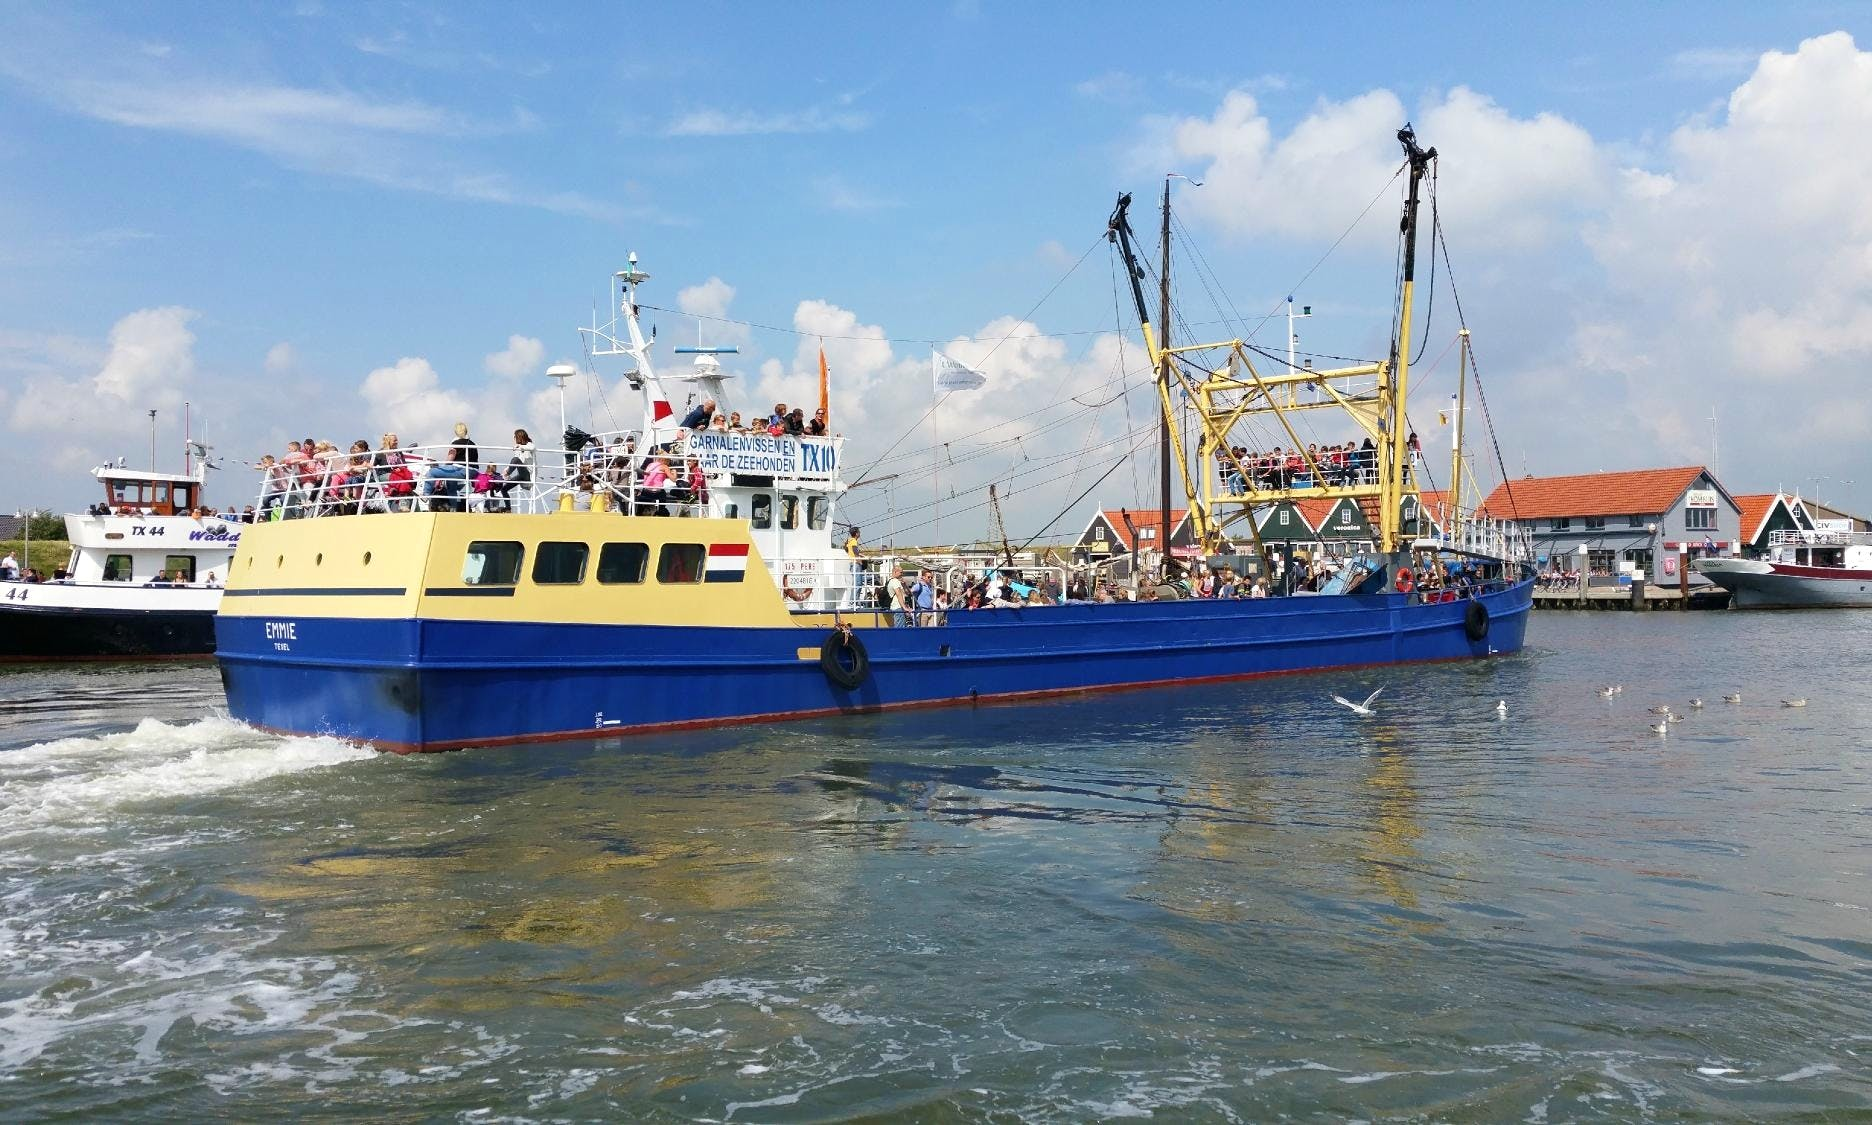 Enjoy Fishing Trips in Oudeschild, Noord-Holland On De Zeester Trawler